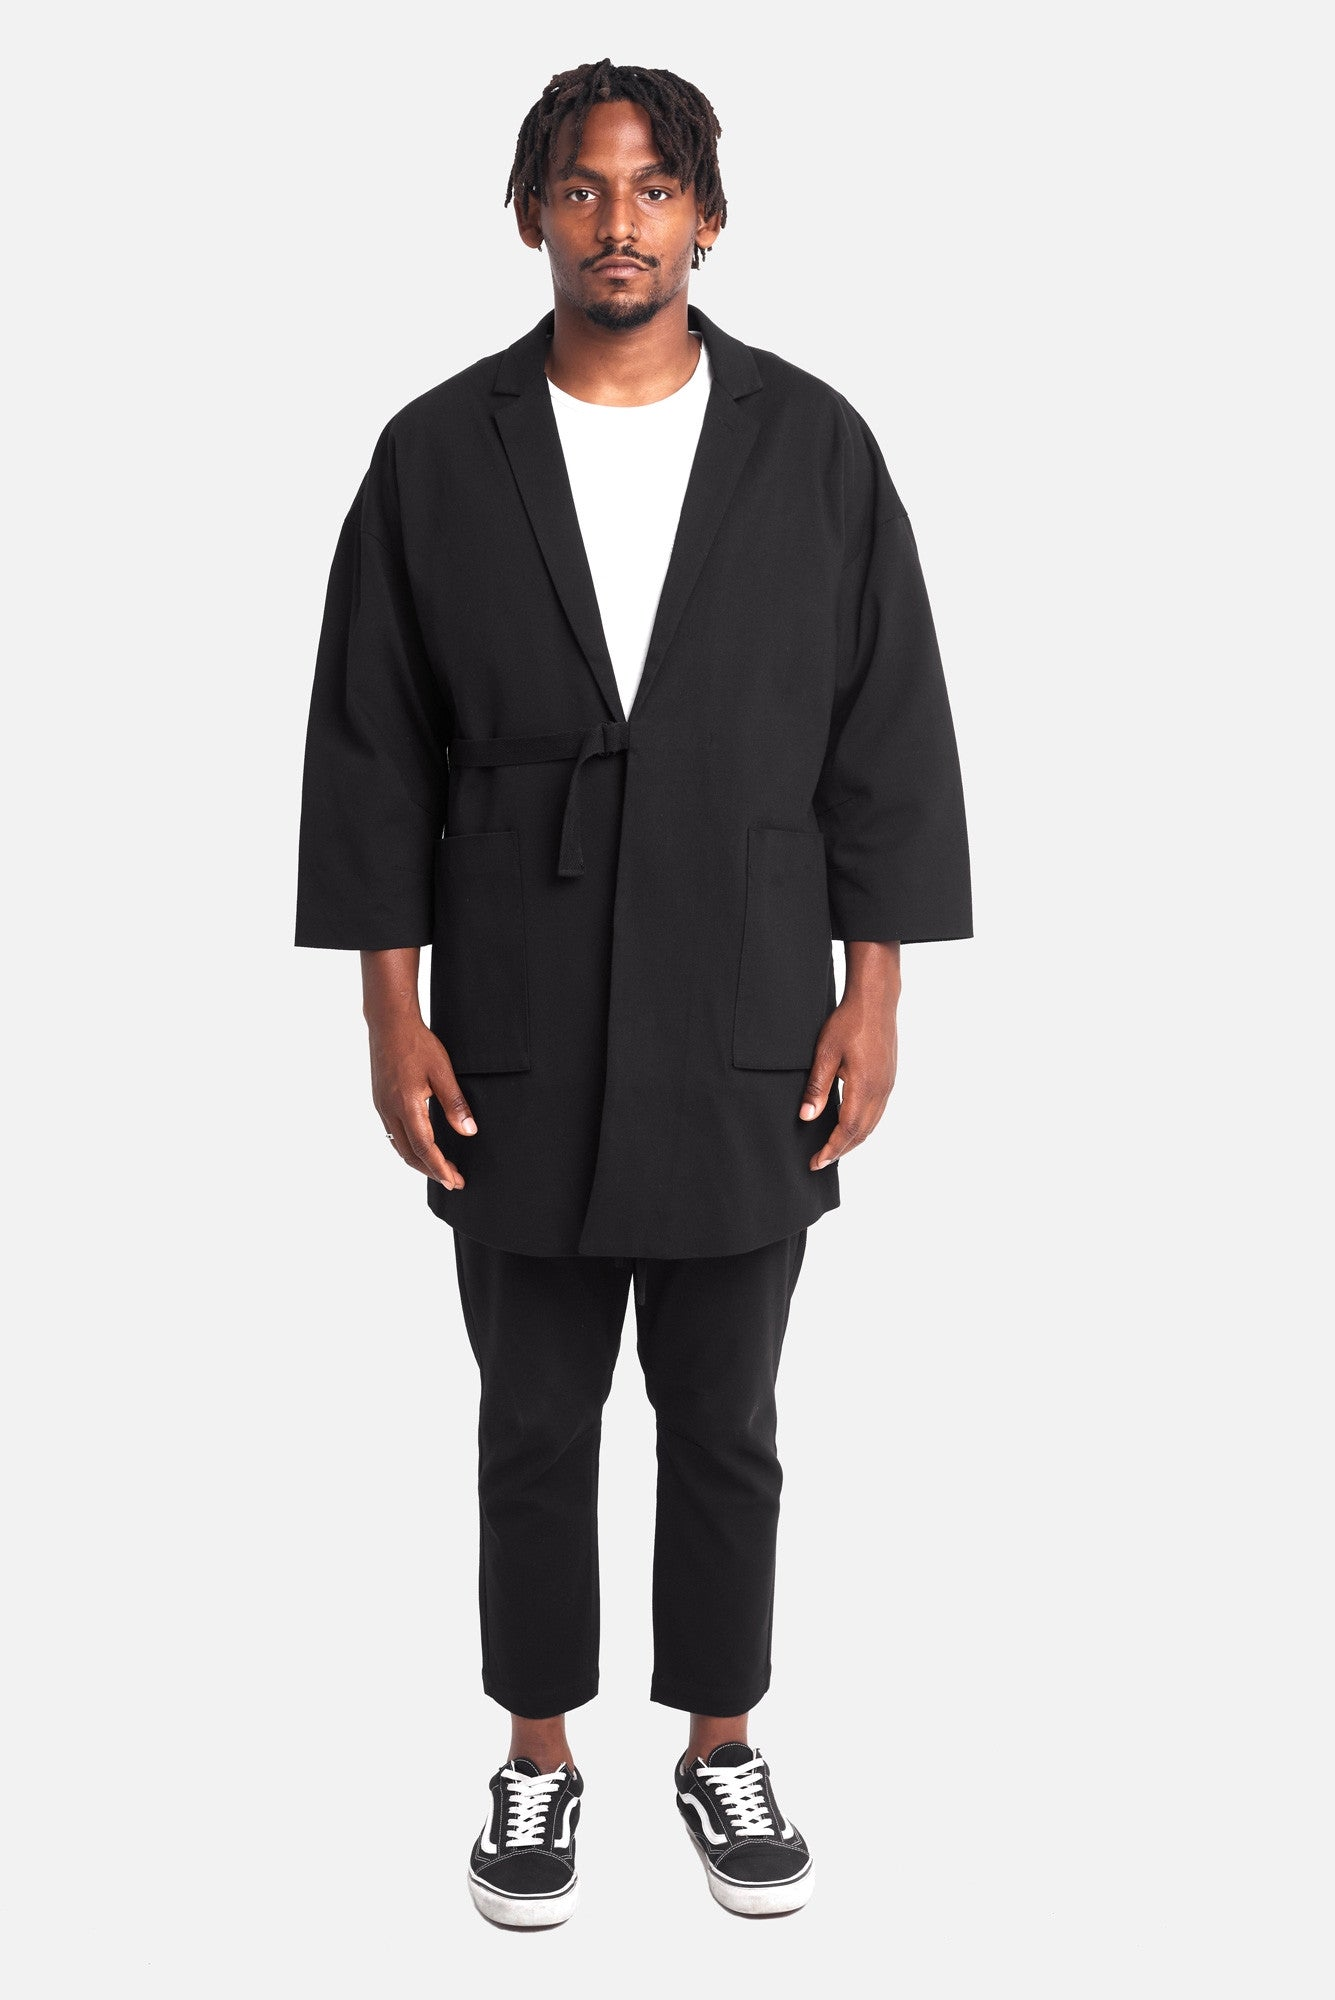 odin article 5 overcoat with 3/4 sleeves - scrt society